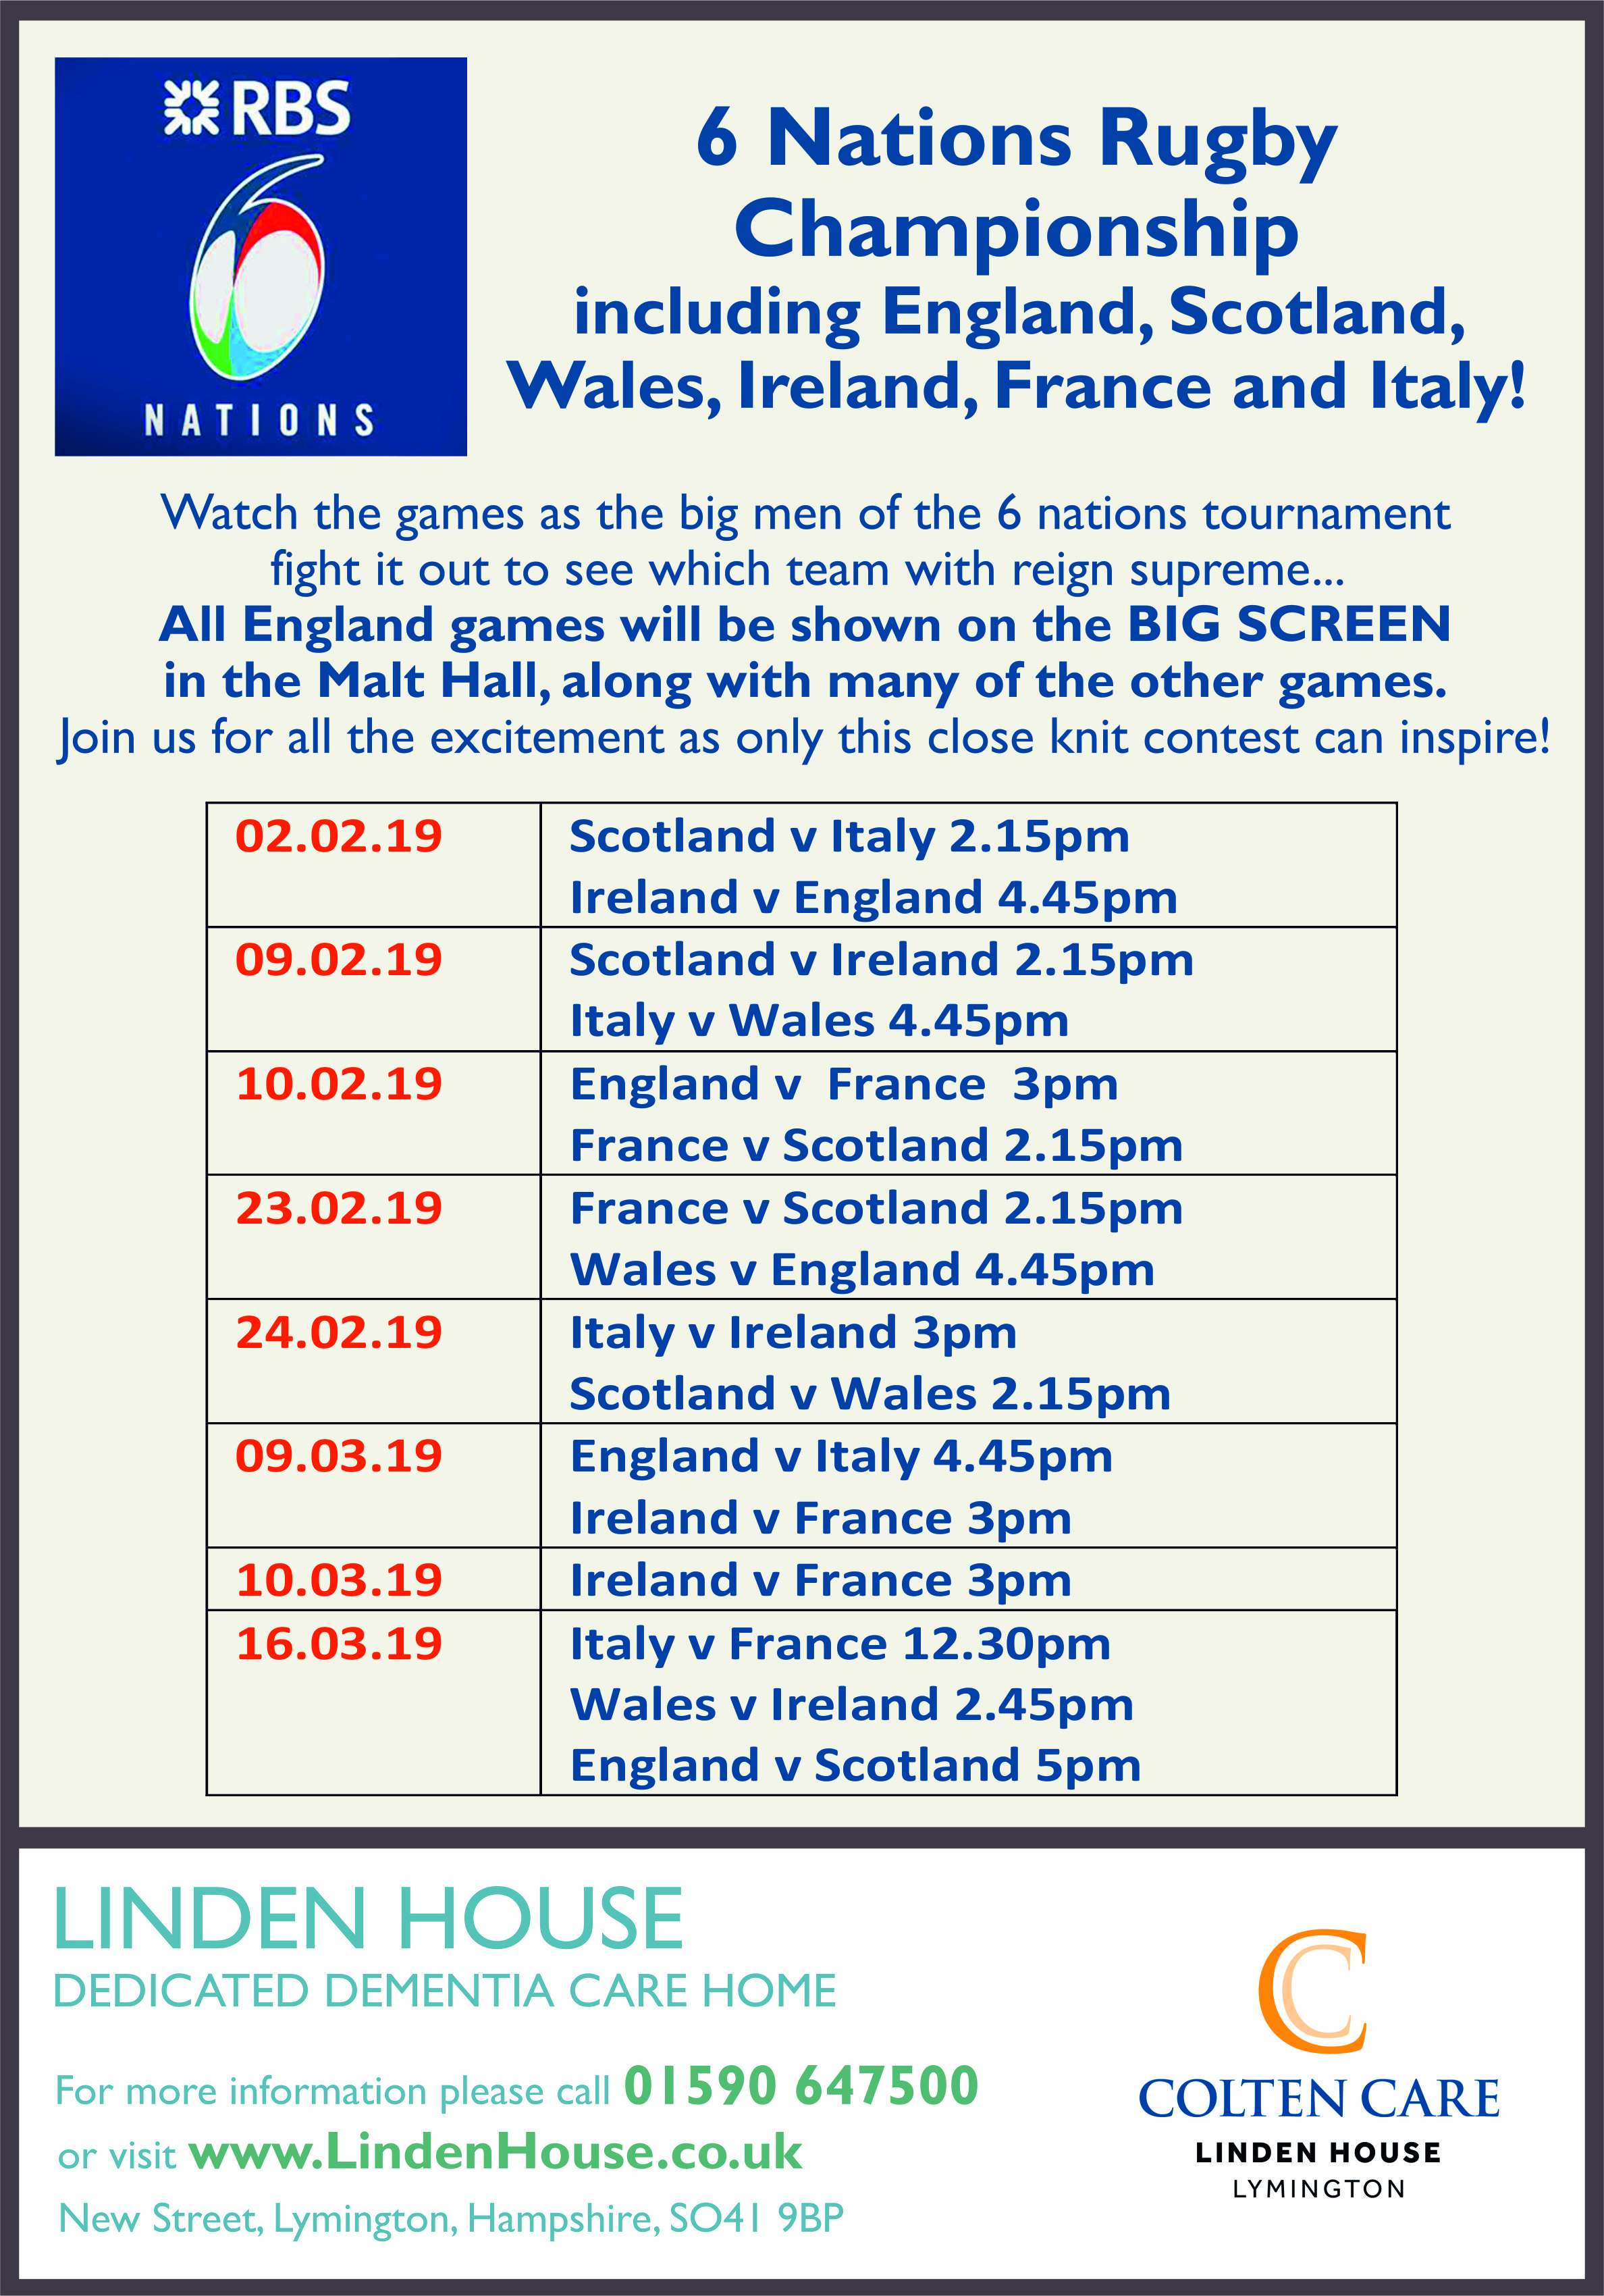 Linden House - RBS 6 Nations Rugby Poster - 4 Feb 2019